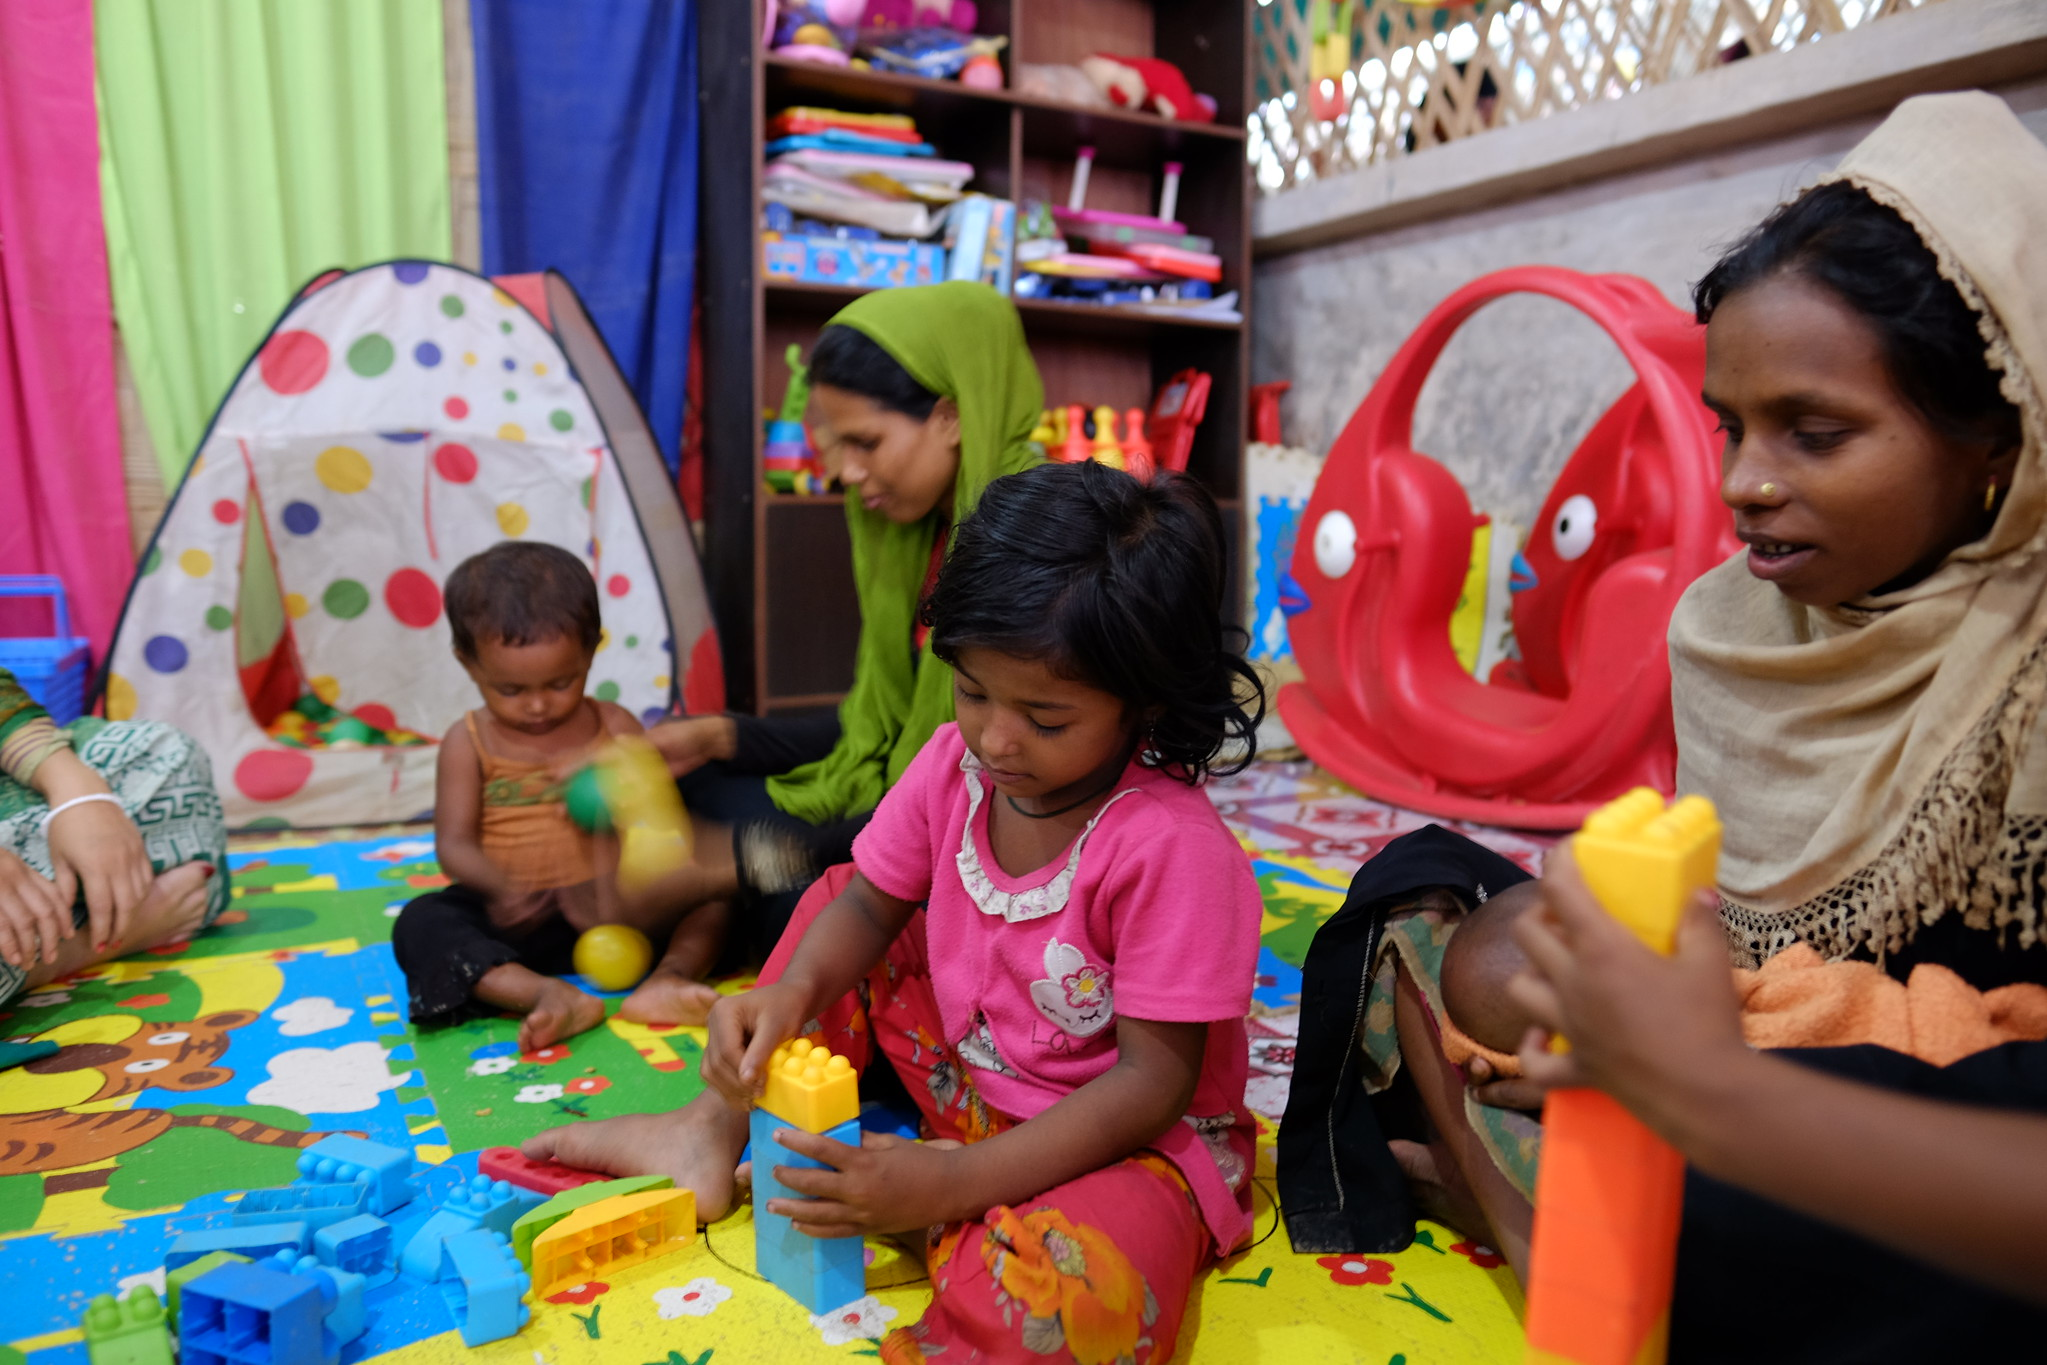 Toddlers and infants in an art therapy space for refugee children with daycare workers watching closely behind them.